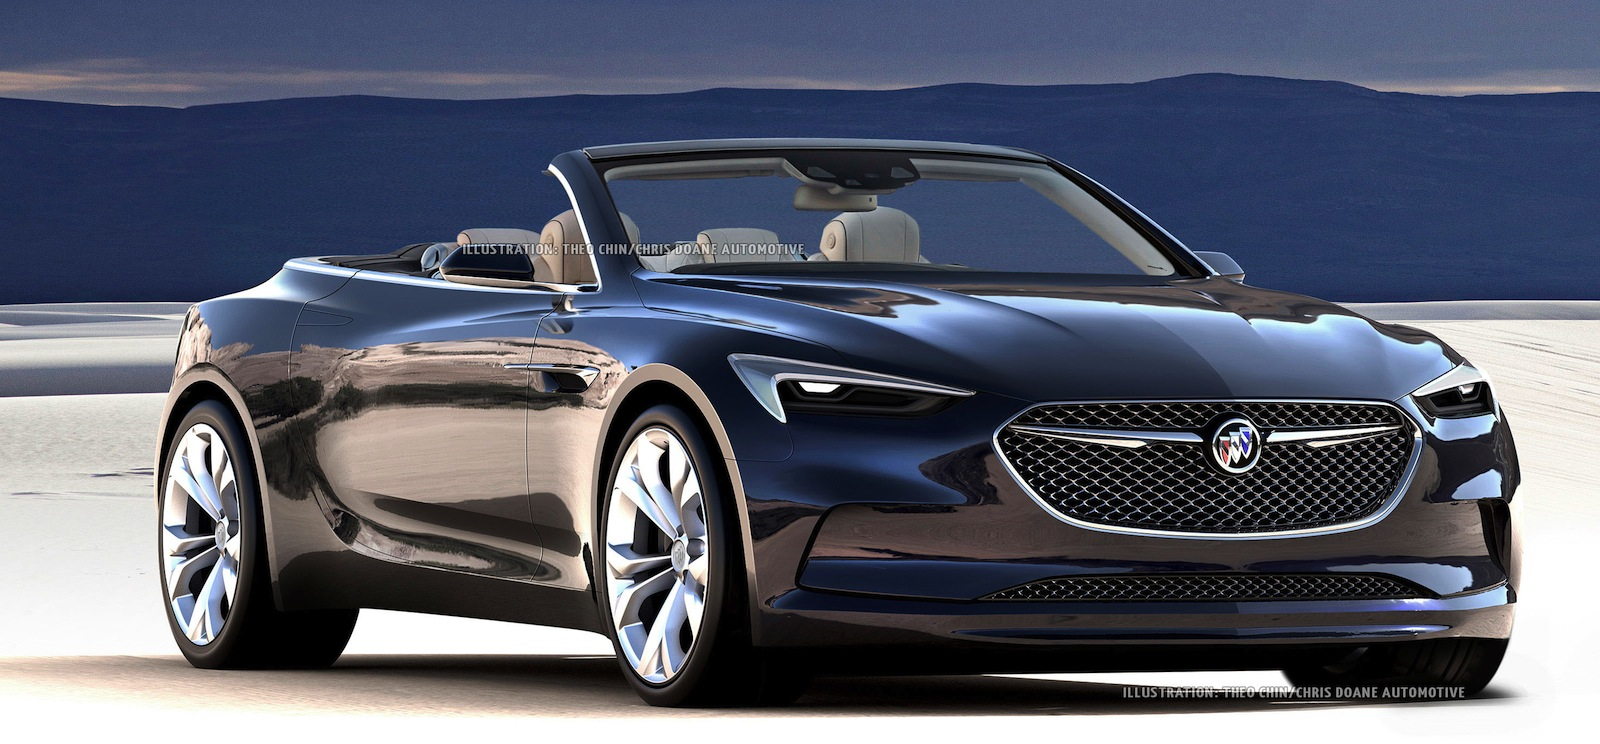 Buick concept cars